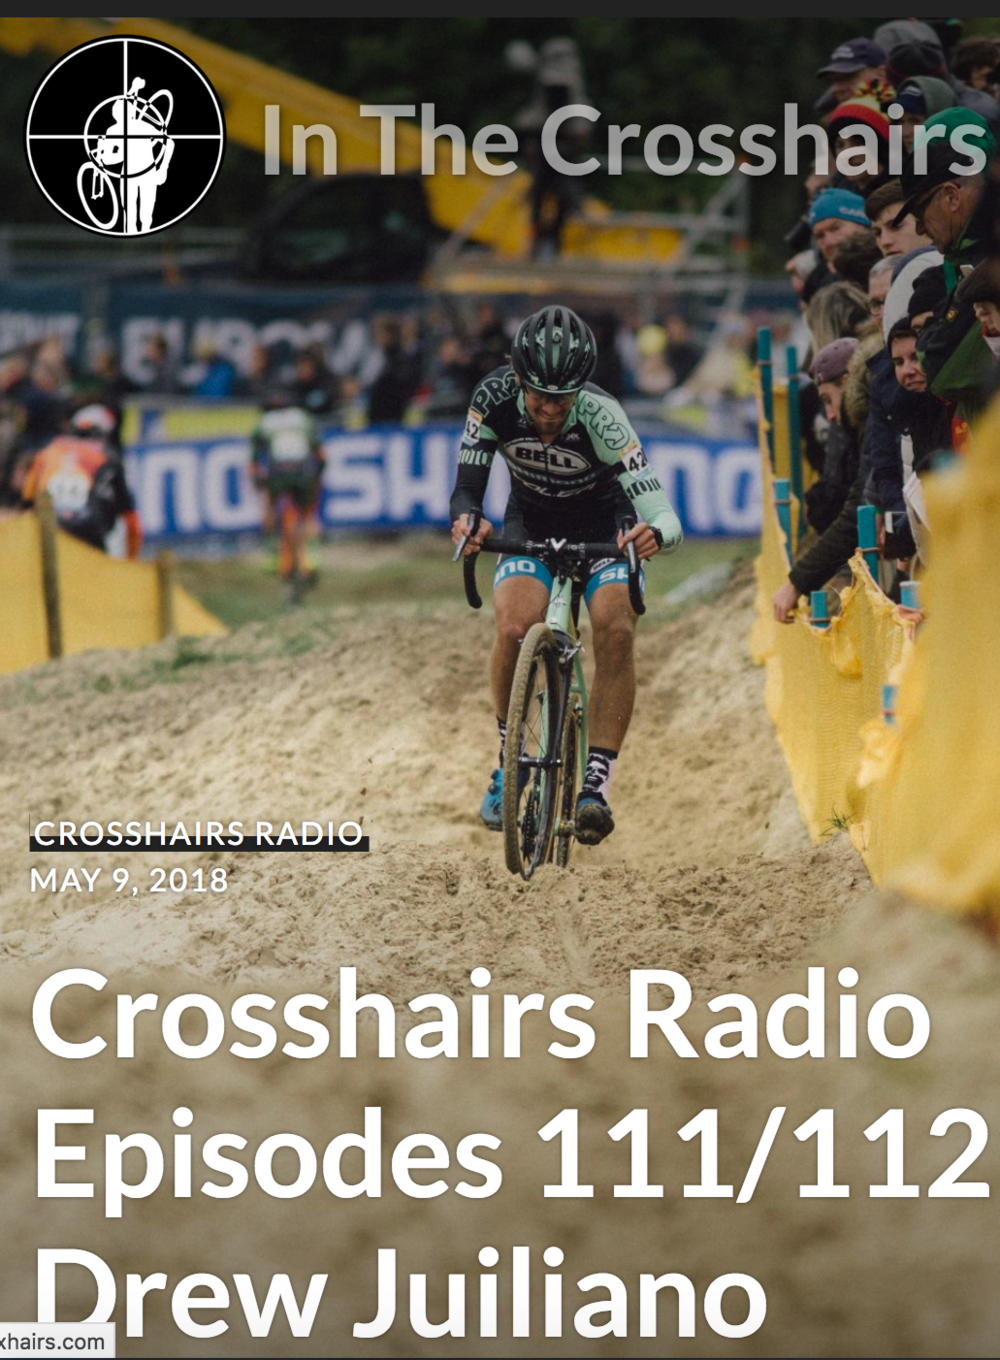 Listen: The Crosshairs Radio Interviews